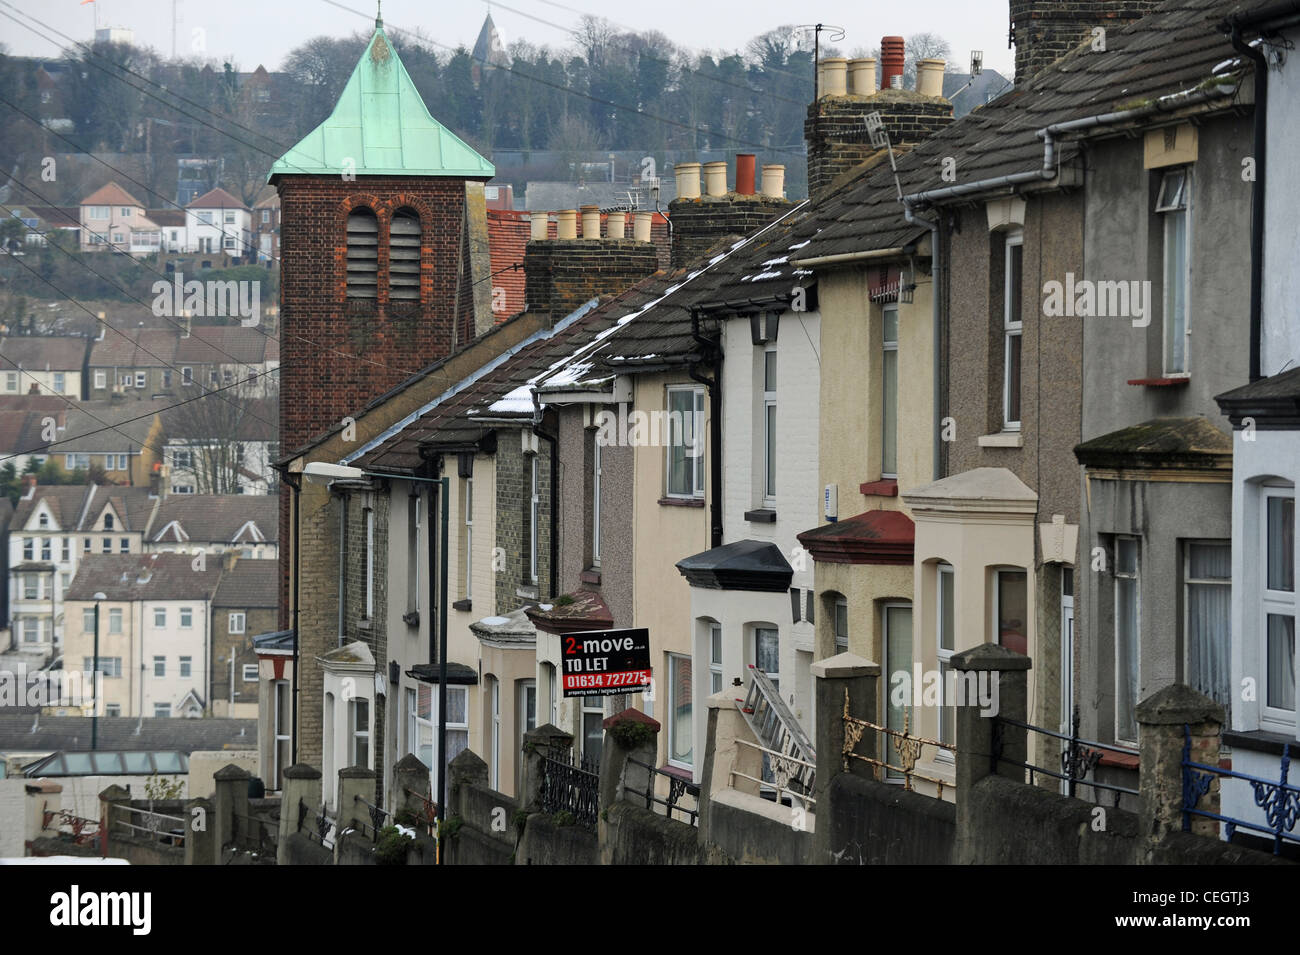 Peachy Terraced Housing With Rental Board Up In Chatham Kent Uk Beutiful Home Inspiration Xortanetmahrainfo